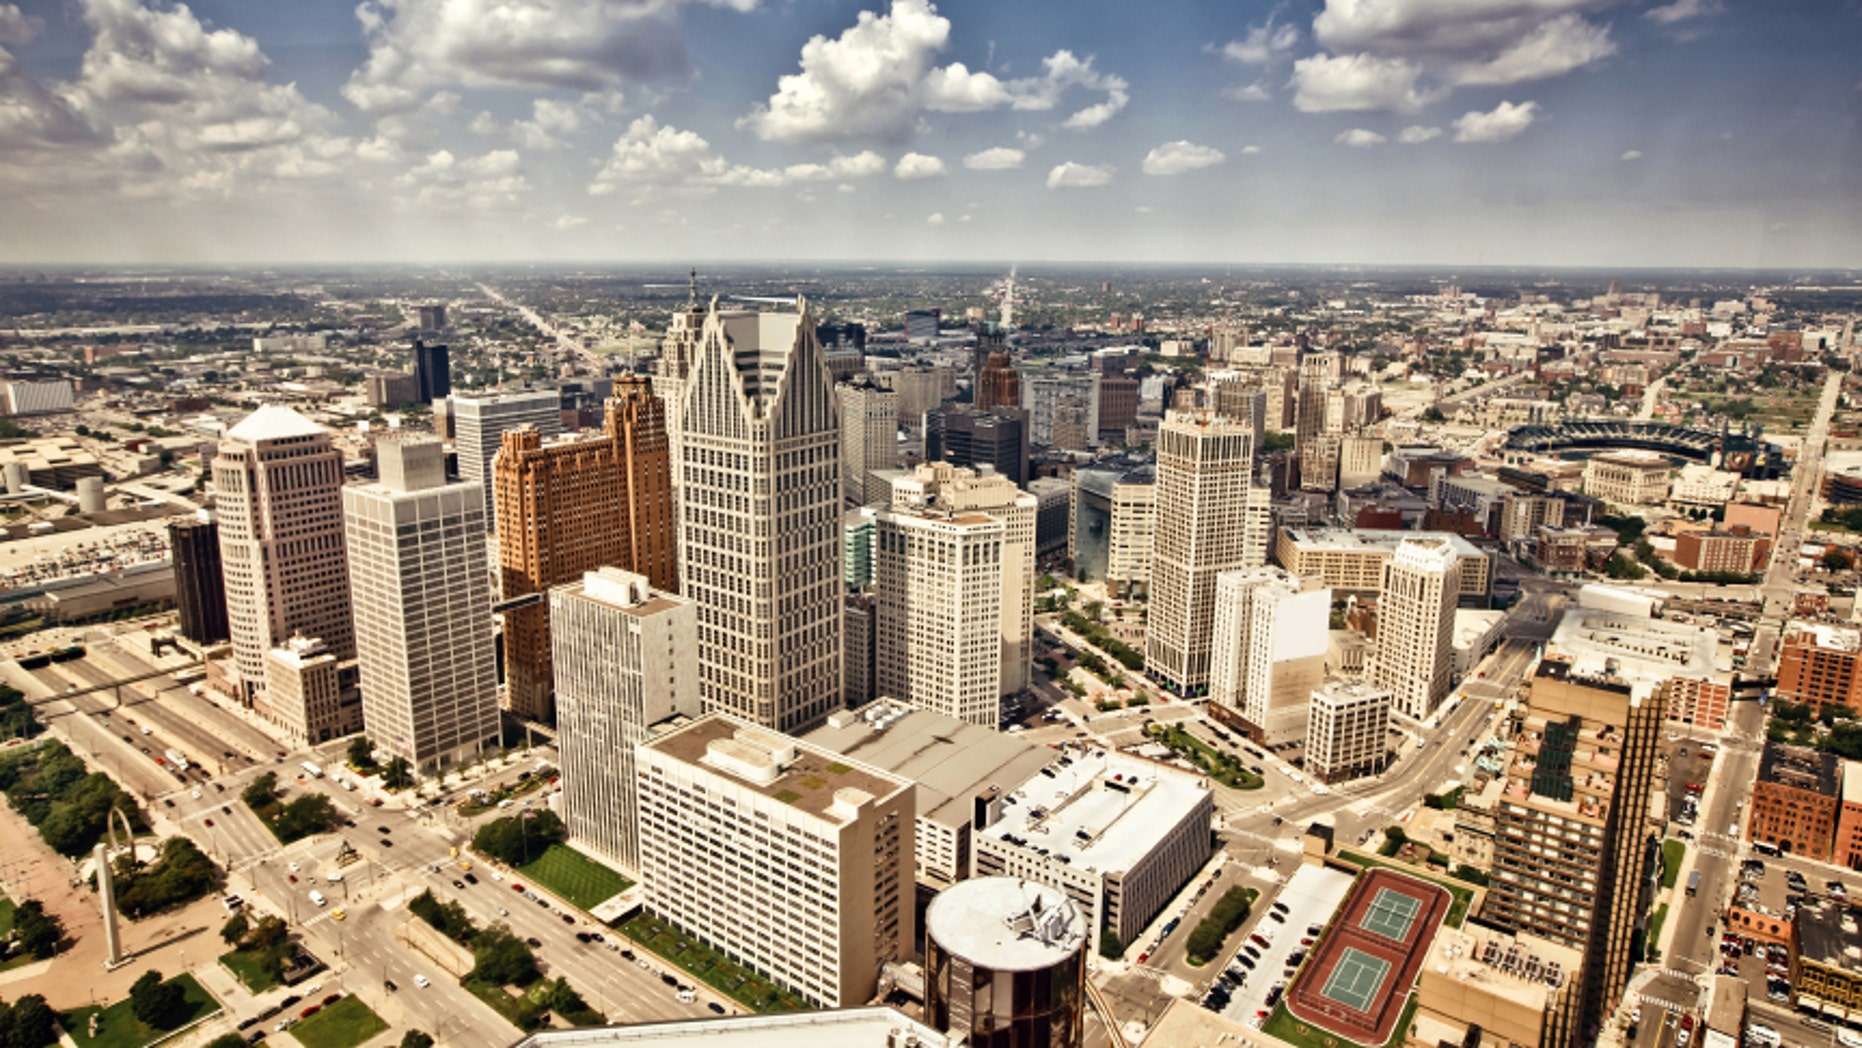 Detroit may be coming back, but it's still one of America's most dangerous cities.